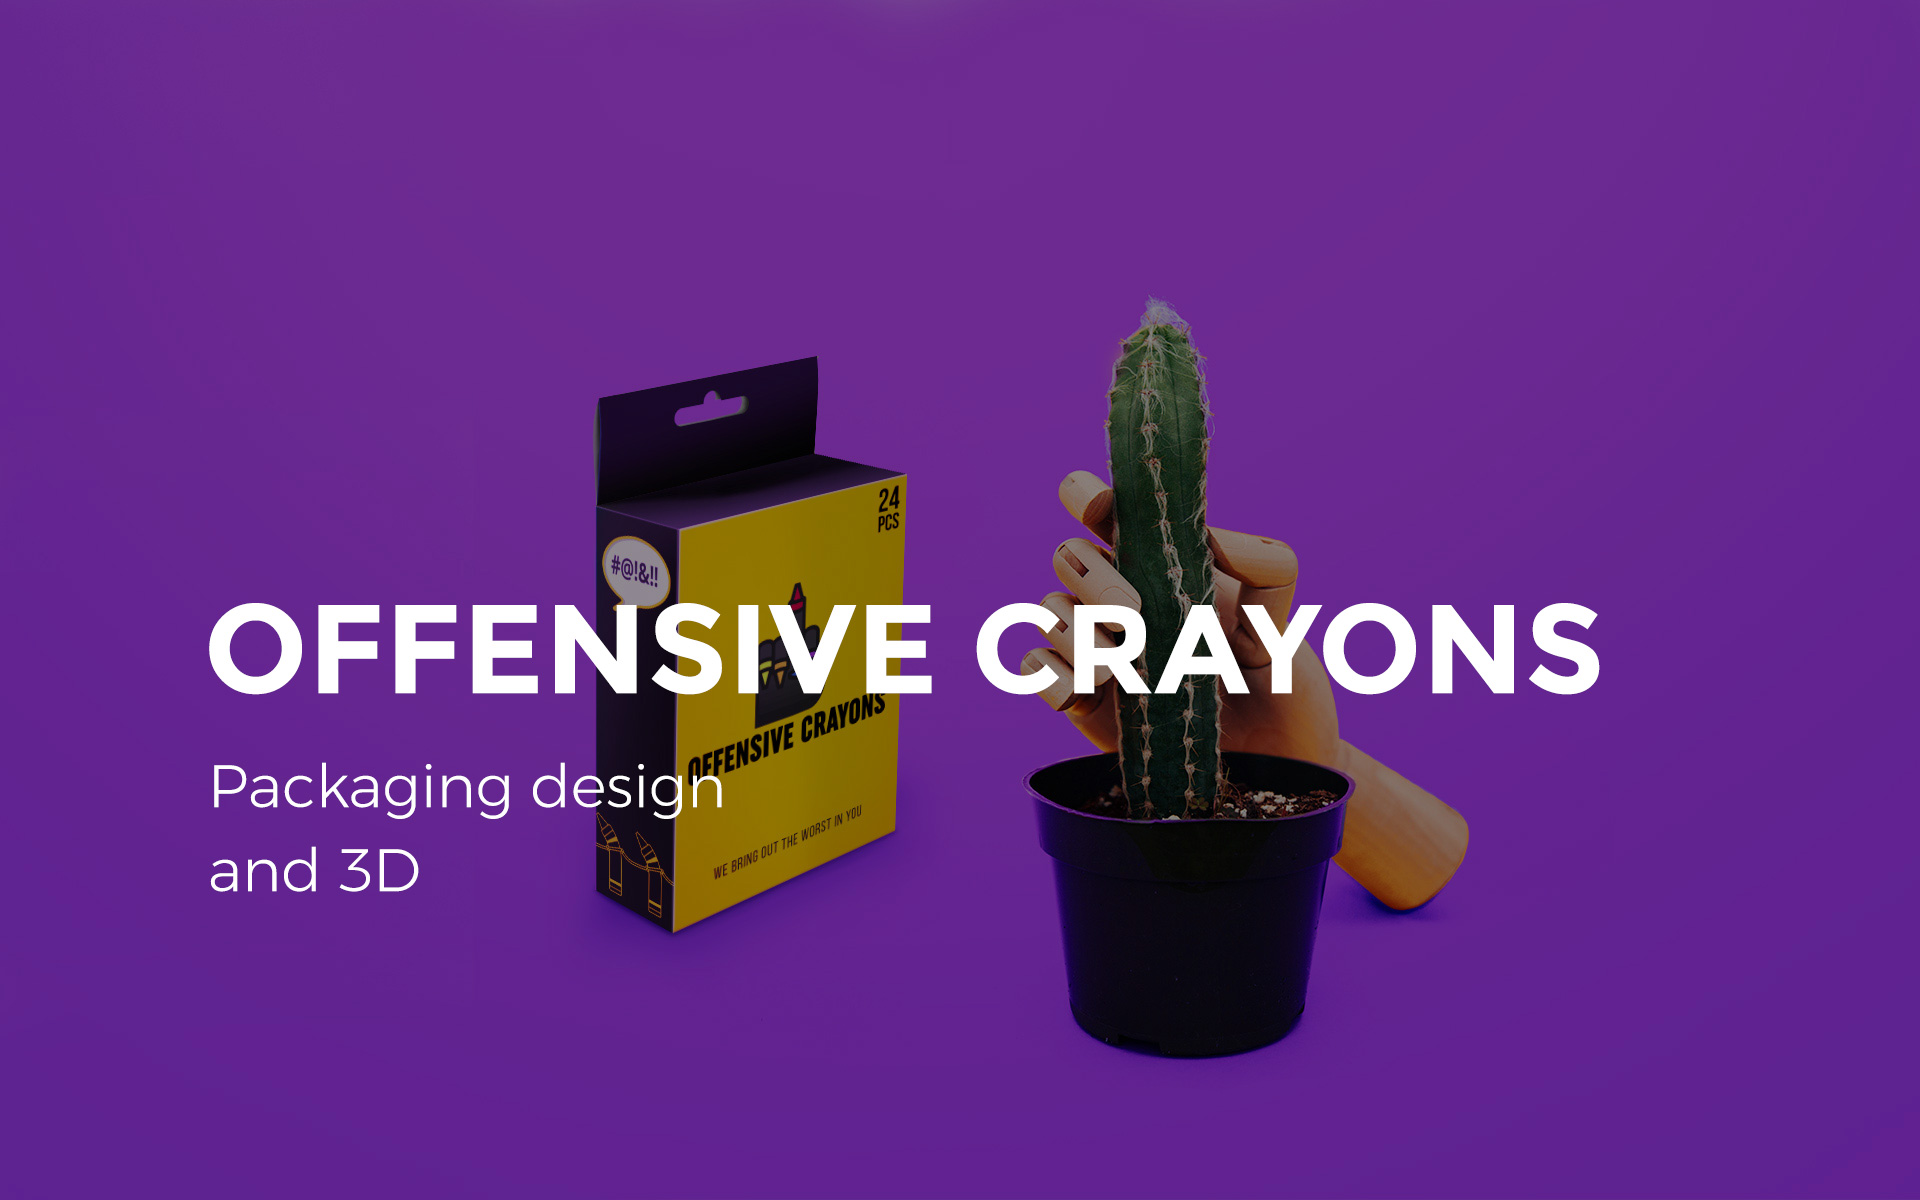 Offensive Crayons packaging design